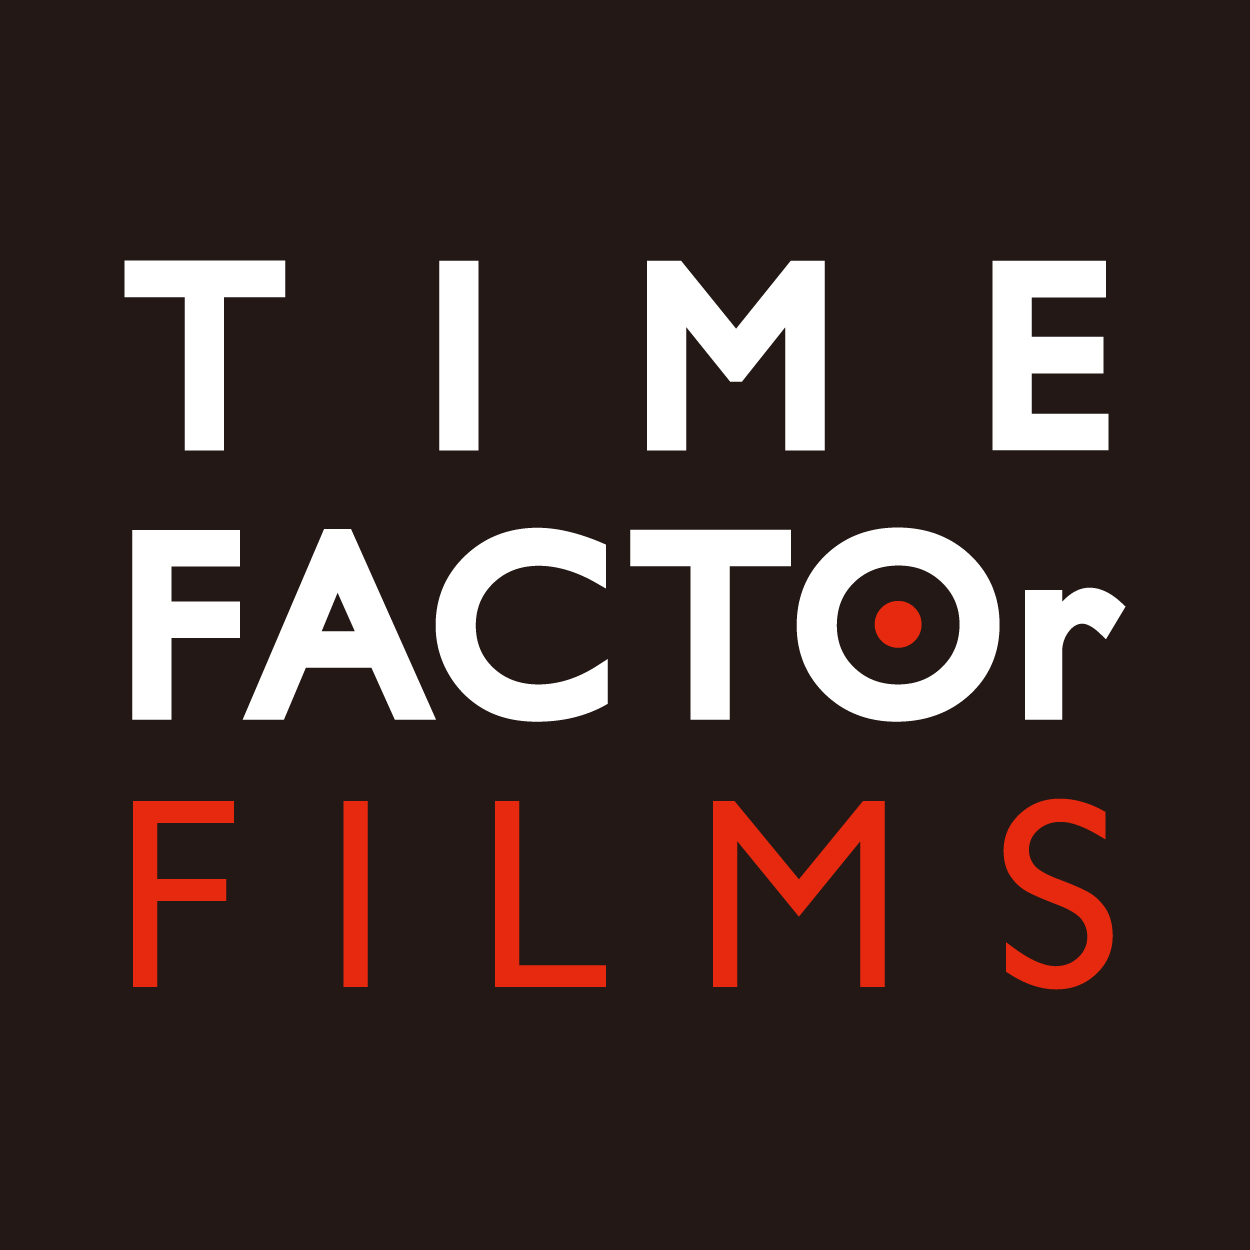 TIME FACTOR FILMS